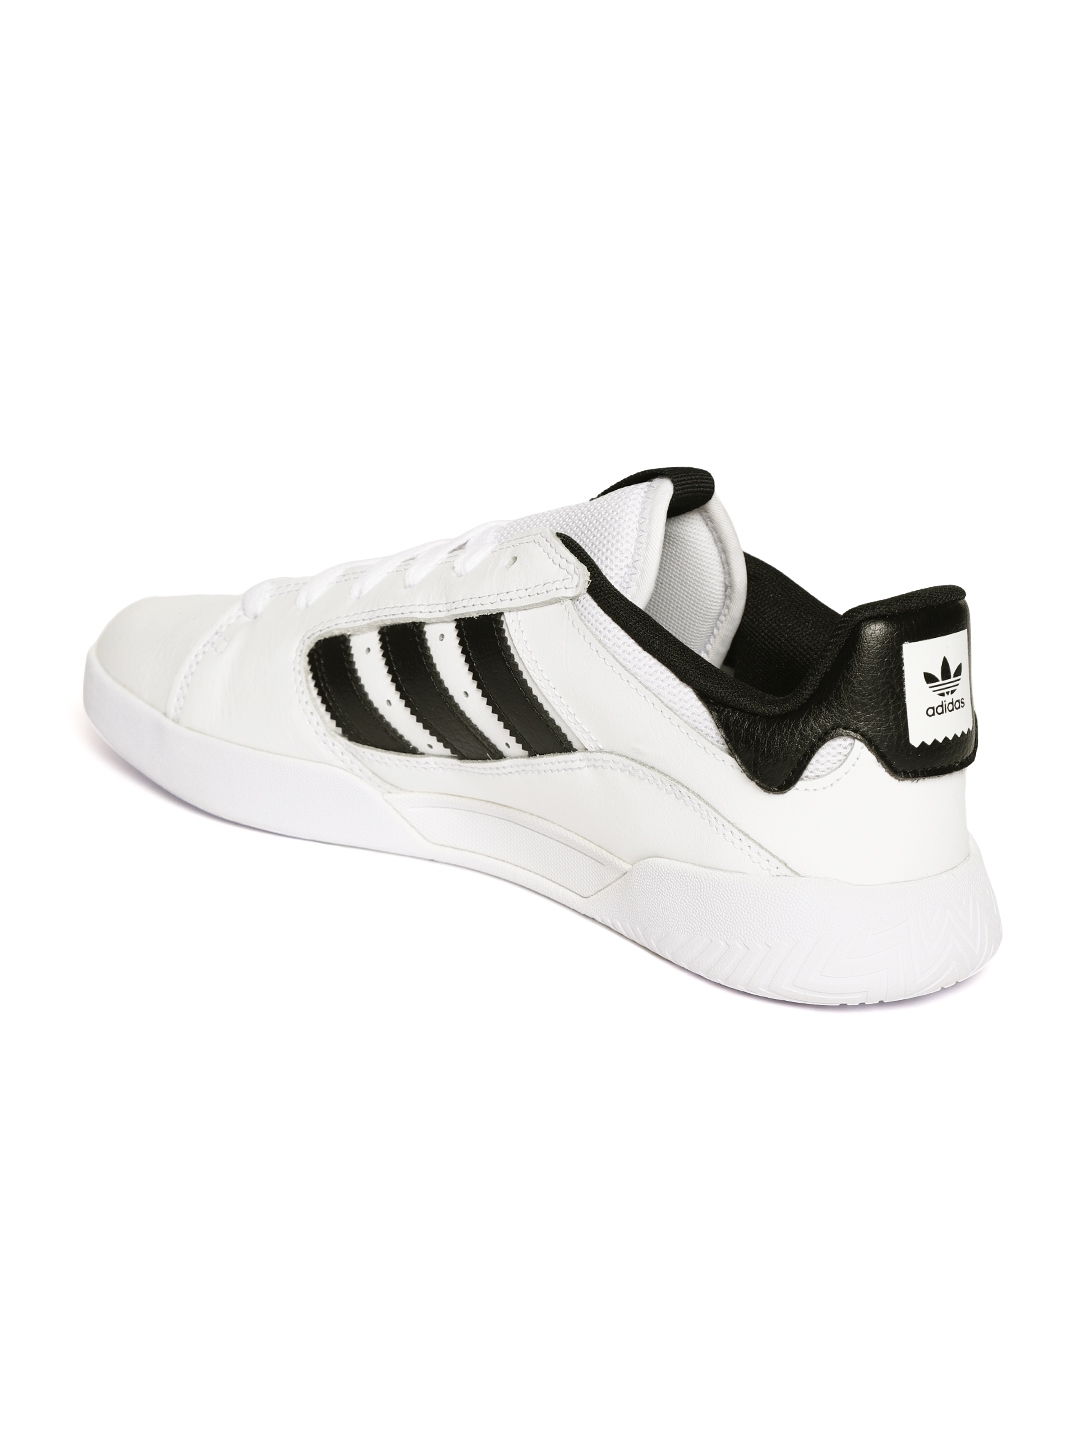 8fcff8f5577c8 Buy ADIDAS Originals Men White VRX Low Leather Sneakers - Casual ...